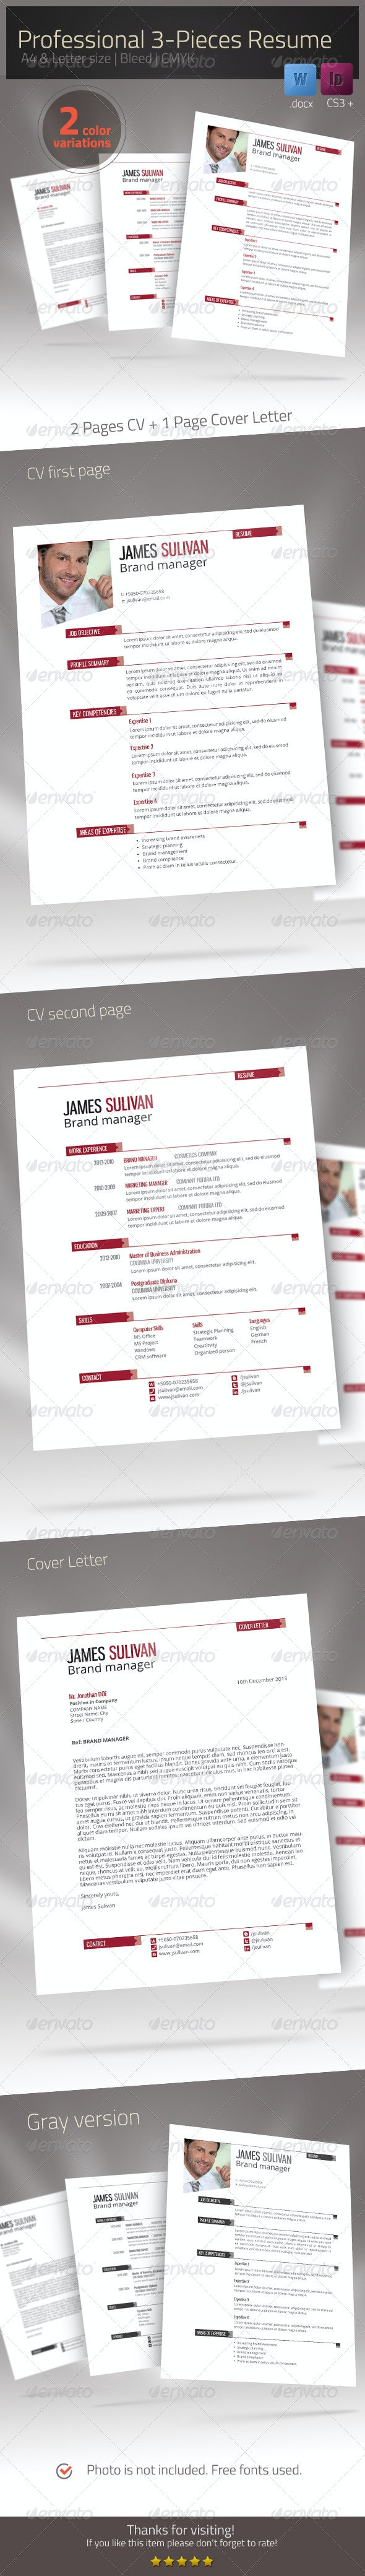 Resume Xtend CV Set - Resumes Stationery